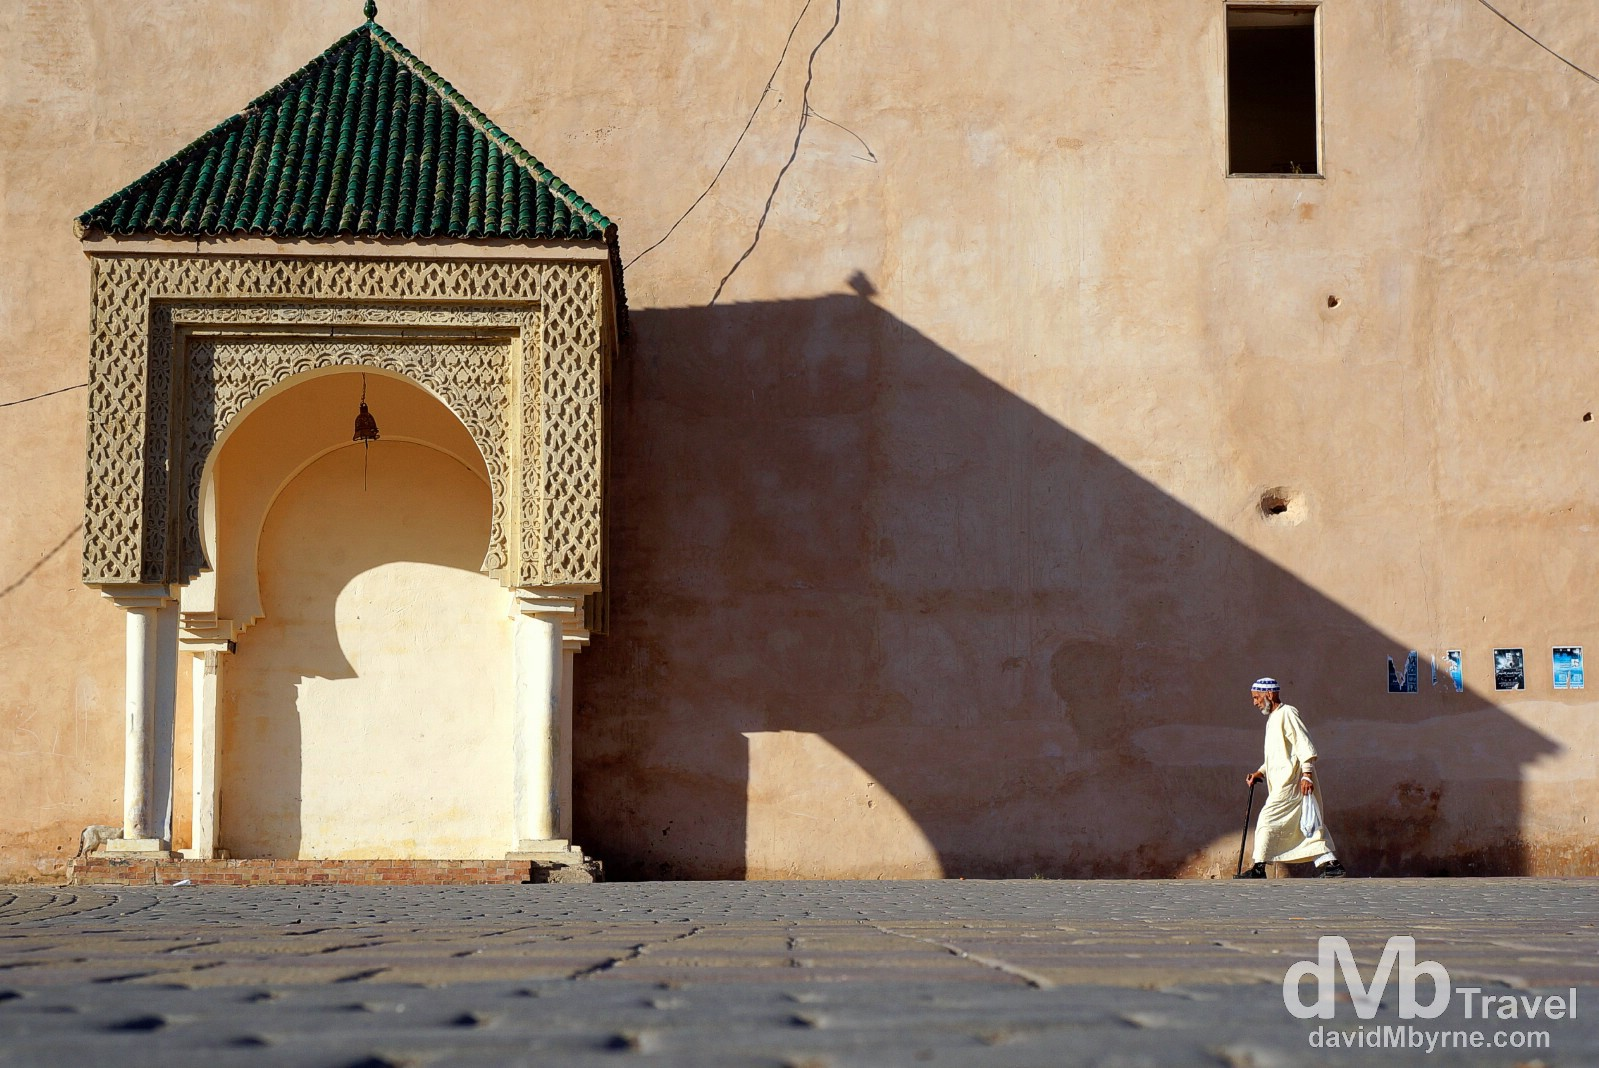 Late afternoon shadows in Place el Hedim, Meknes, Morocco. May 23rd, 2014.